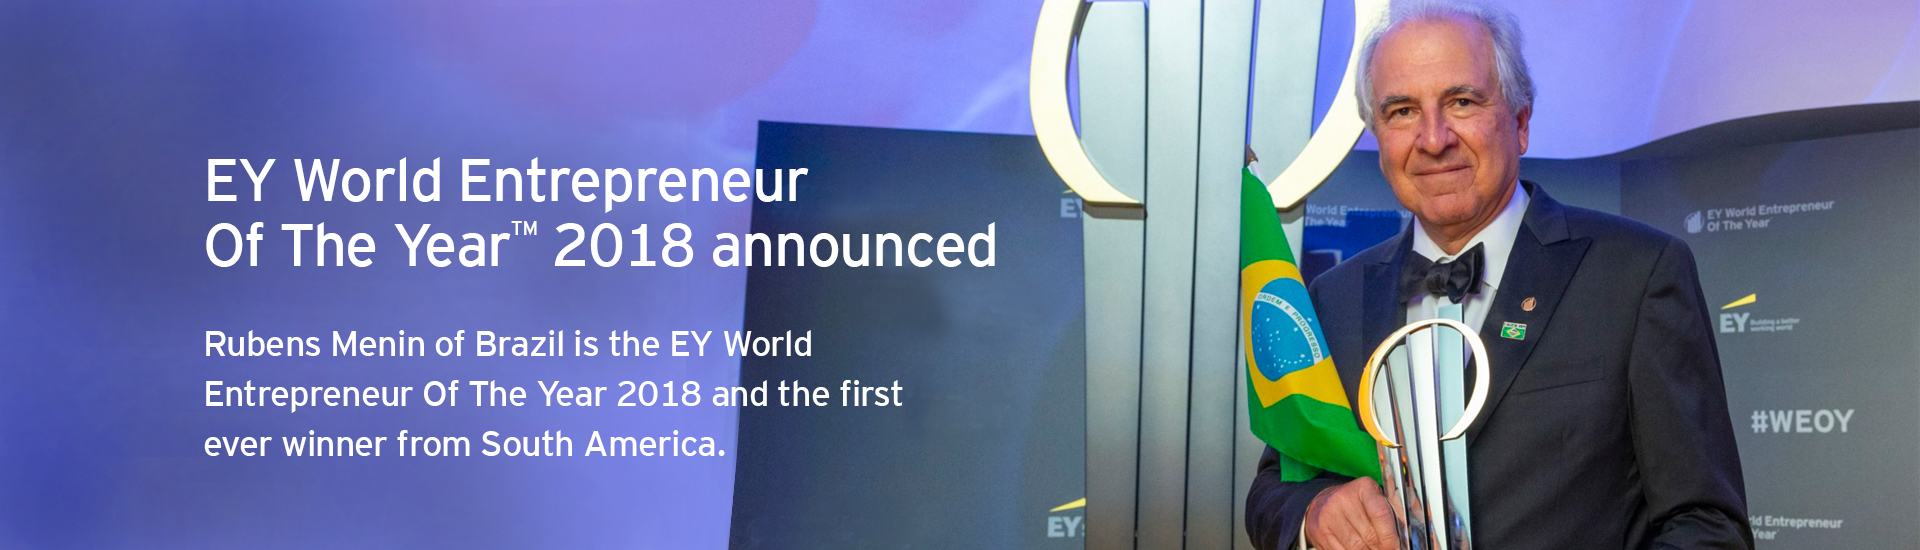 d8690a279a World-Entrepreneur-Of-The-Year---Overview - EY - Global